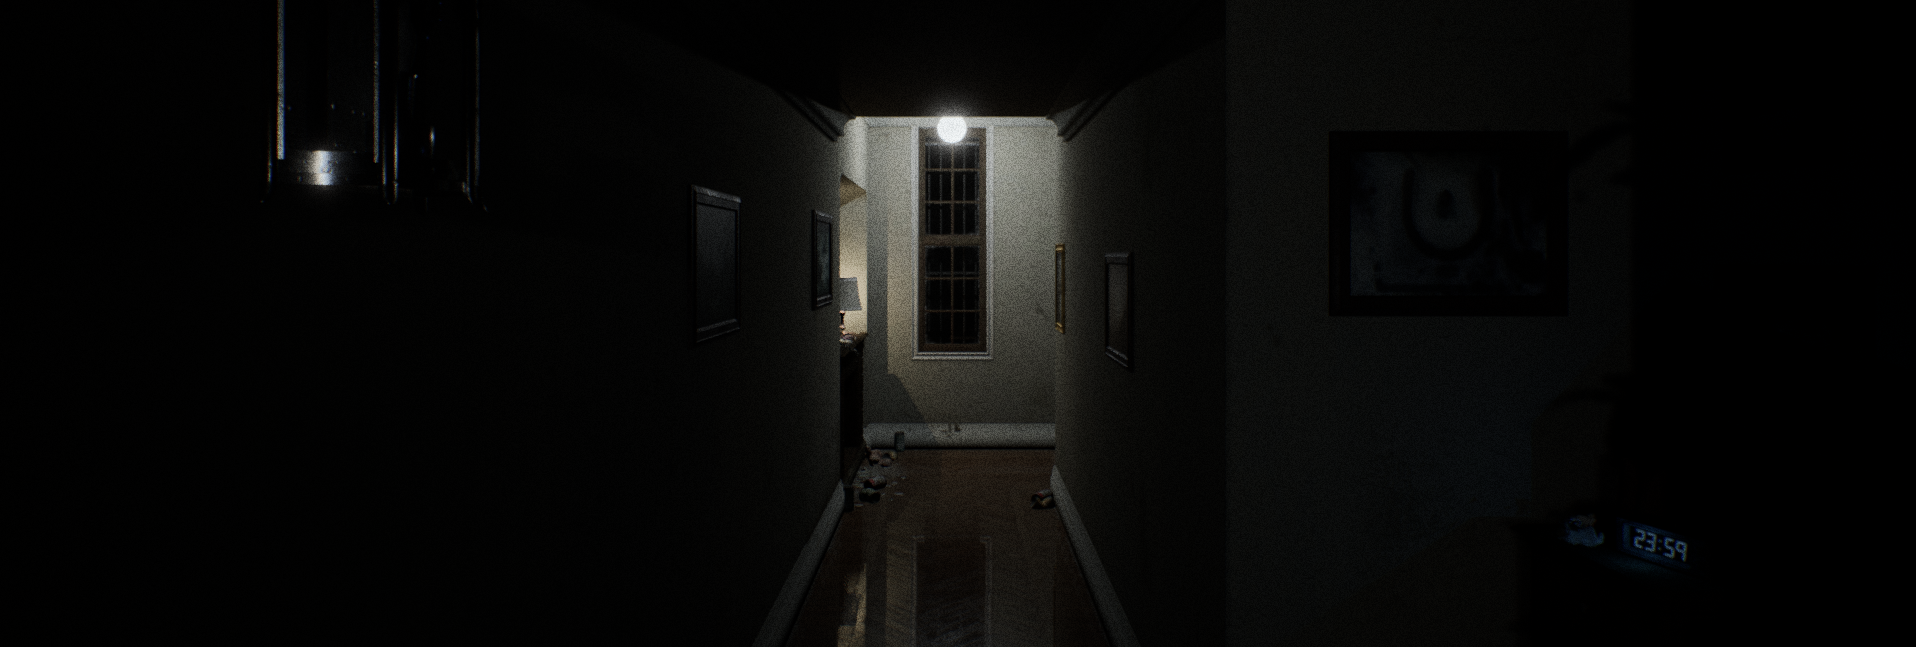 New Unreal Engine P T  on PC is Most Complete Silent Hills Remake